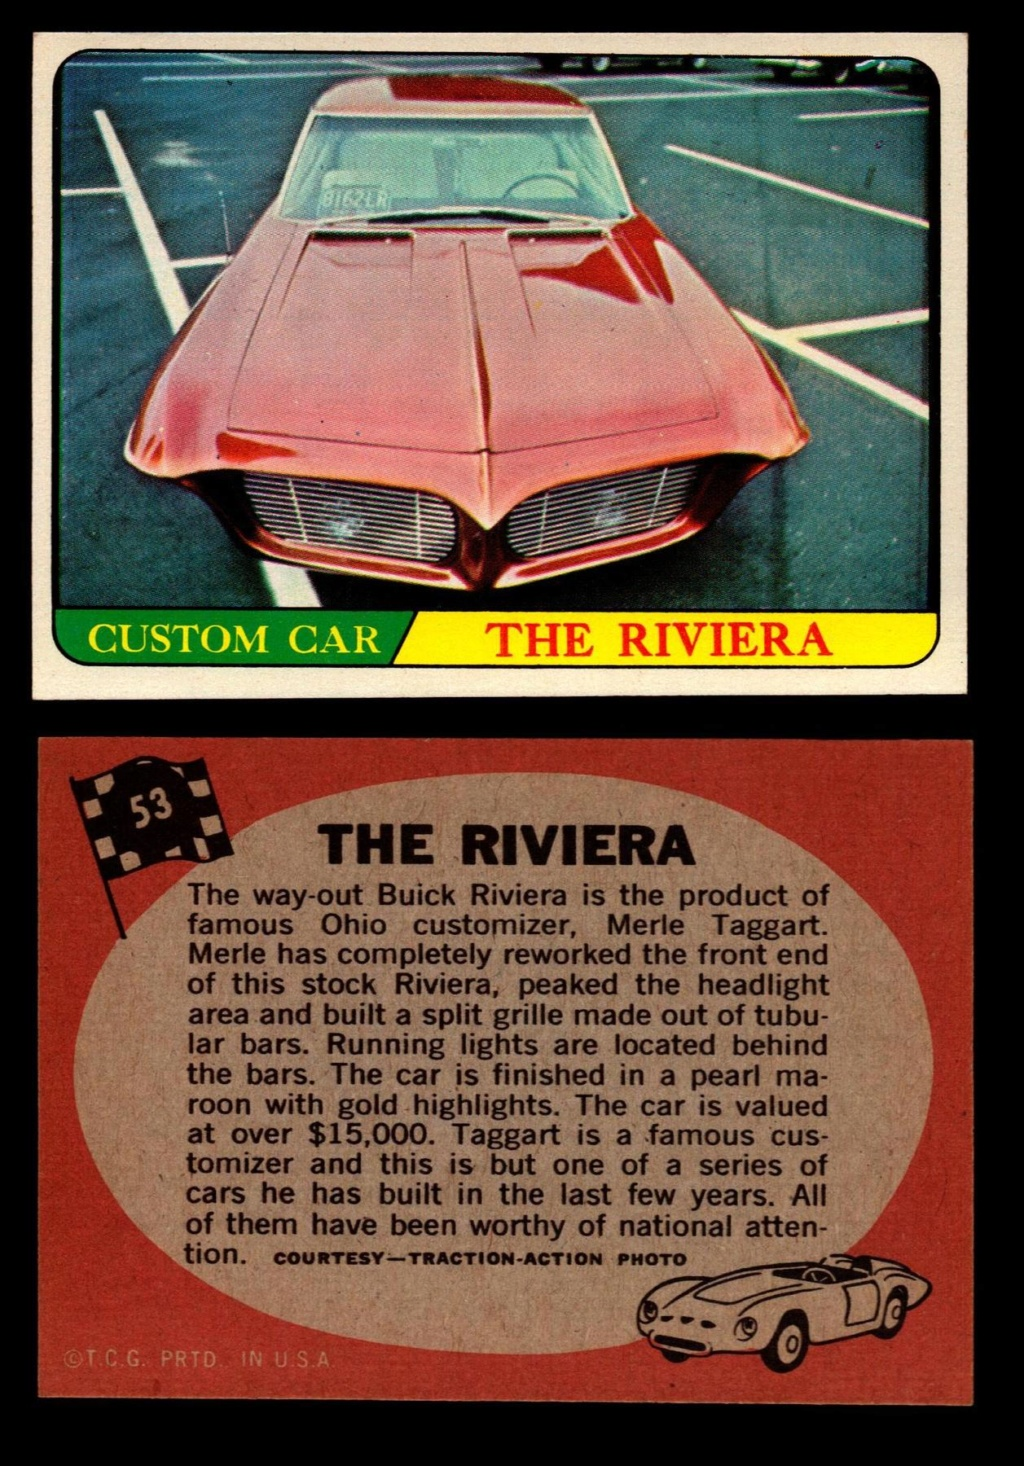 Hot Rods Topps - Vintage Trading Cards 1968 - Custom car - Dragster - Racer - Dream car - Barris Kustom City - Ed Roth Darrill Starbird, Gene Winfield, Bill Cuchenberry - Page 2 53_c4f10